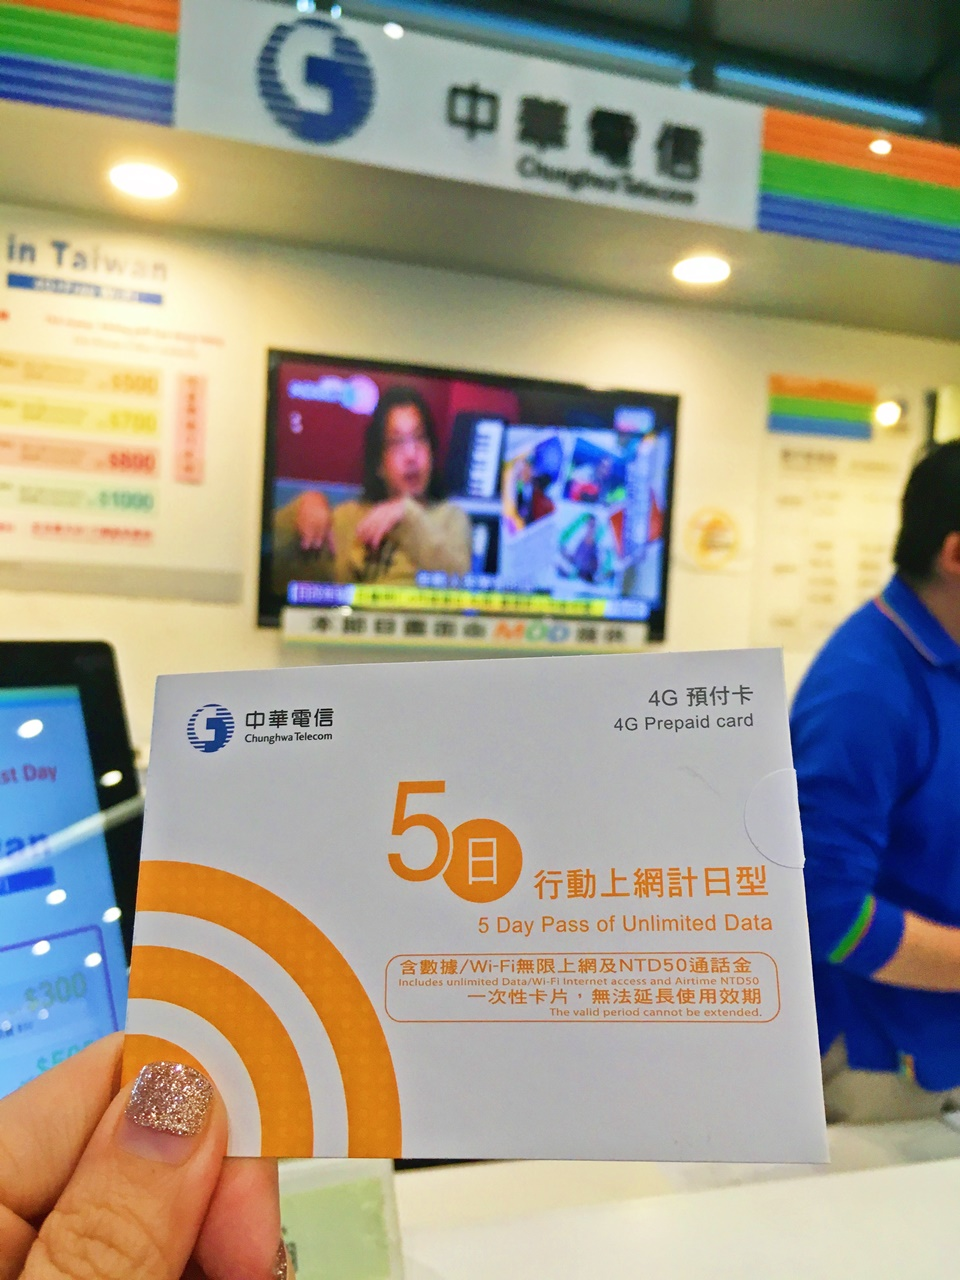 4G SIM Card (TW Airport Pick Up) for Taiwan from Chunghwa Telecom